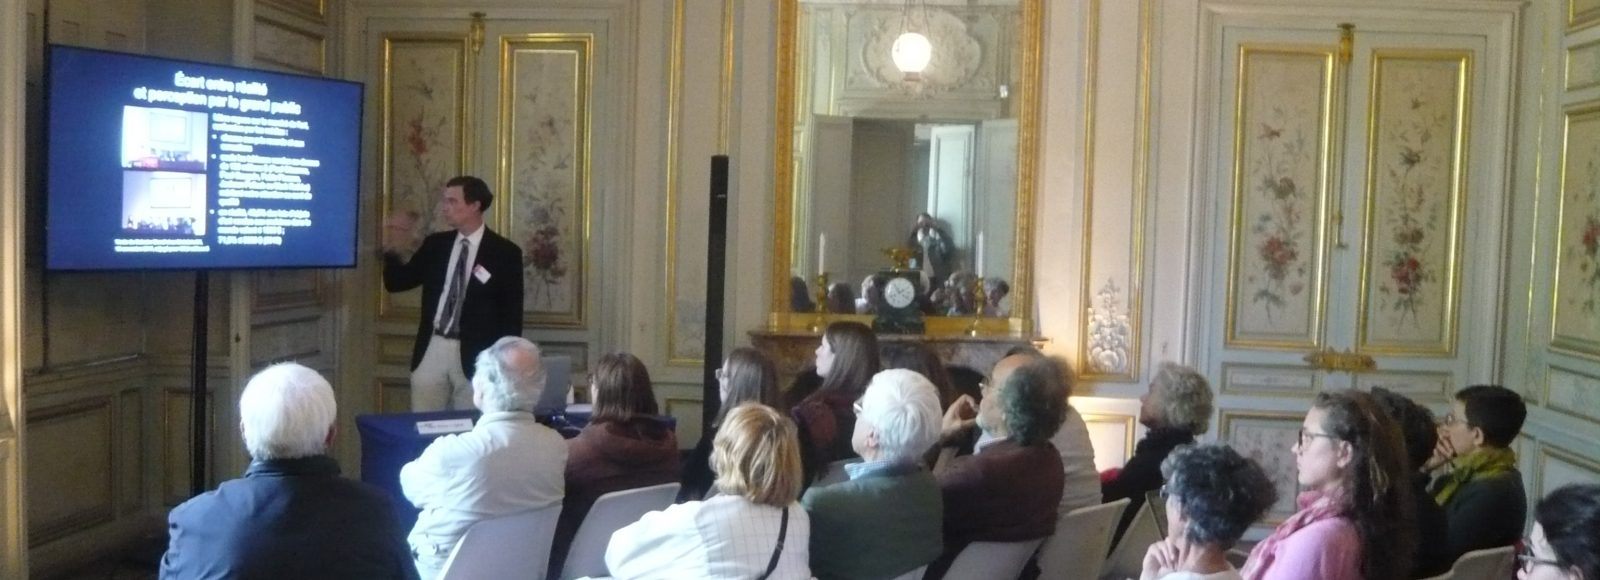 Professor gives talk in ornate French room